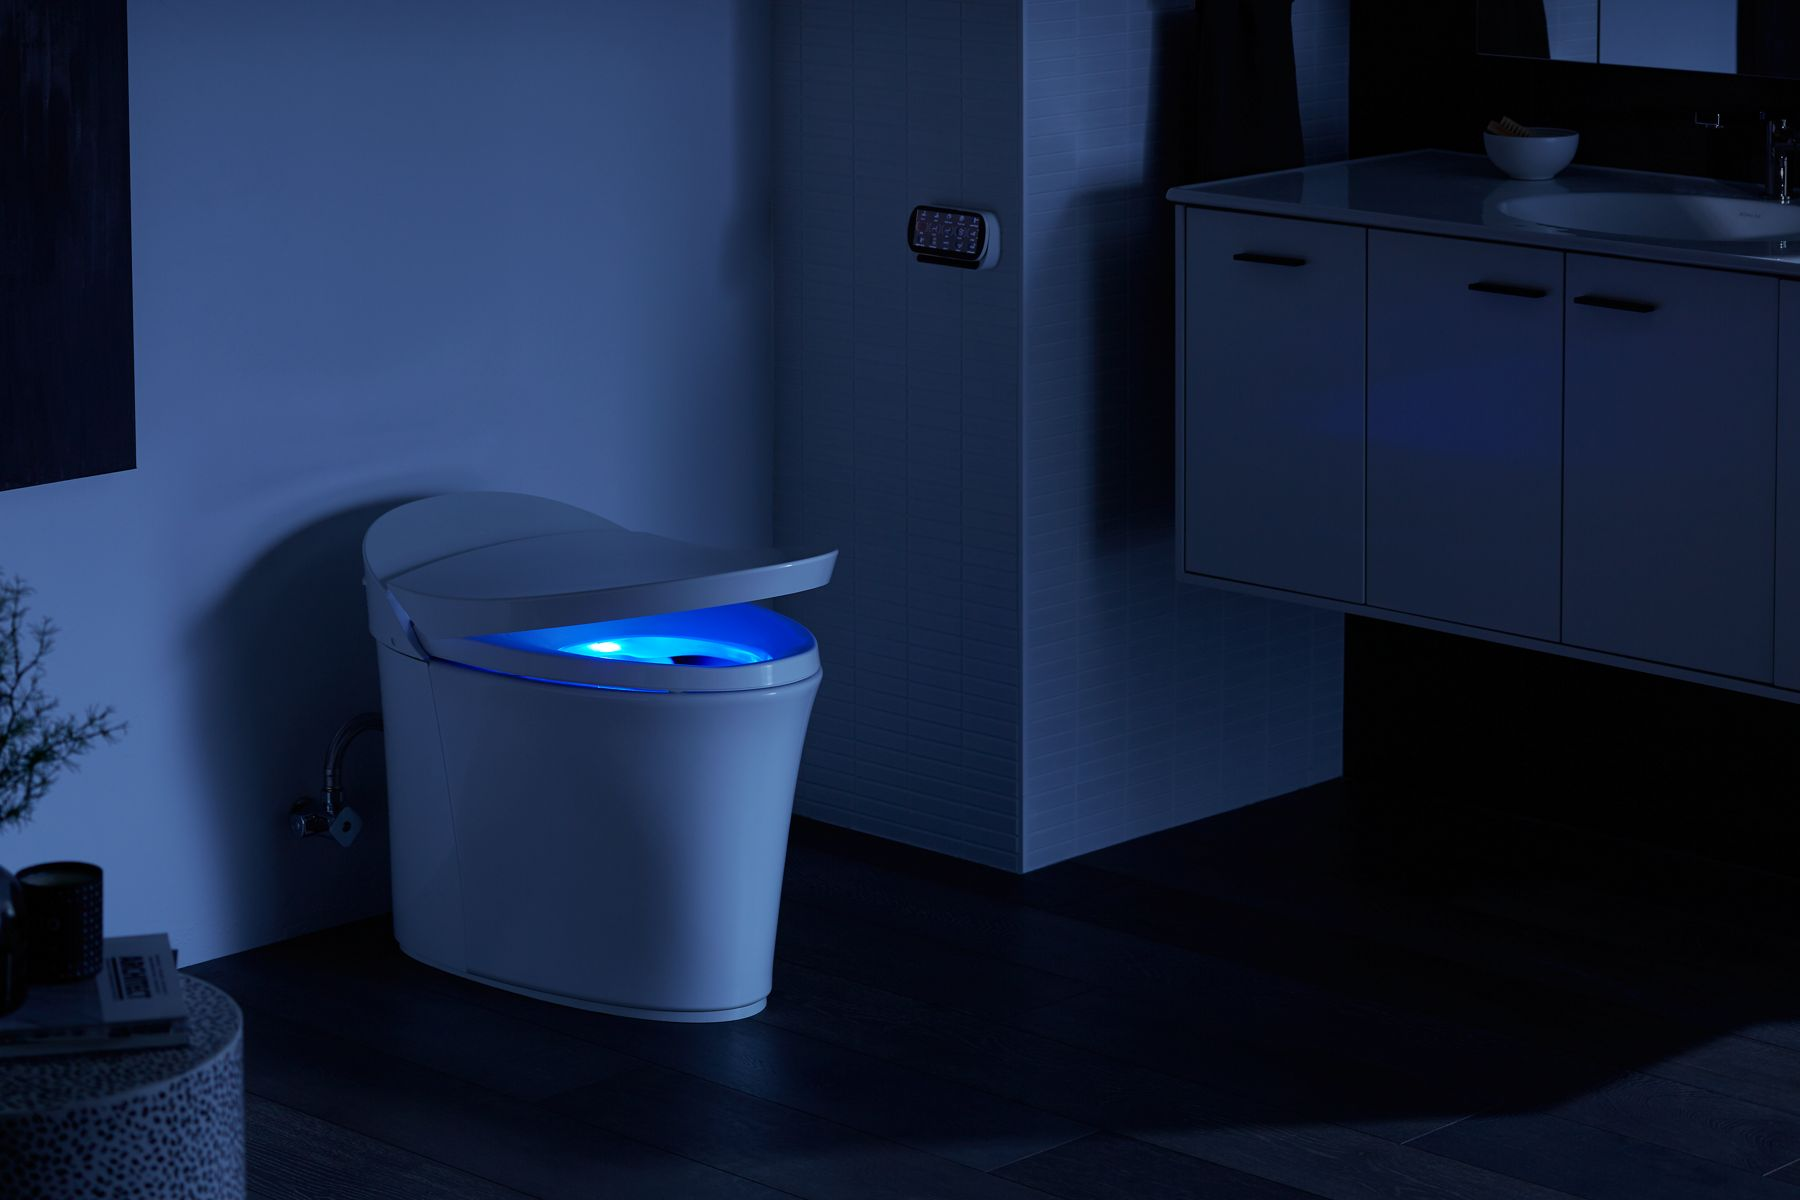 Smart Floor Waste Kohler Toilets Showers Sinks Faucets And More For Bathroom